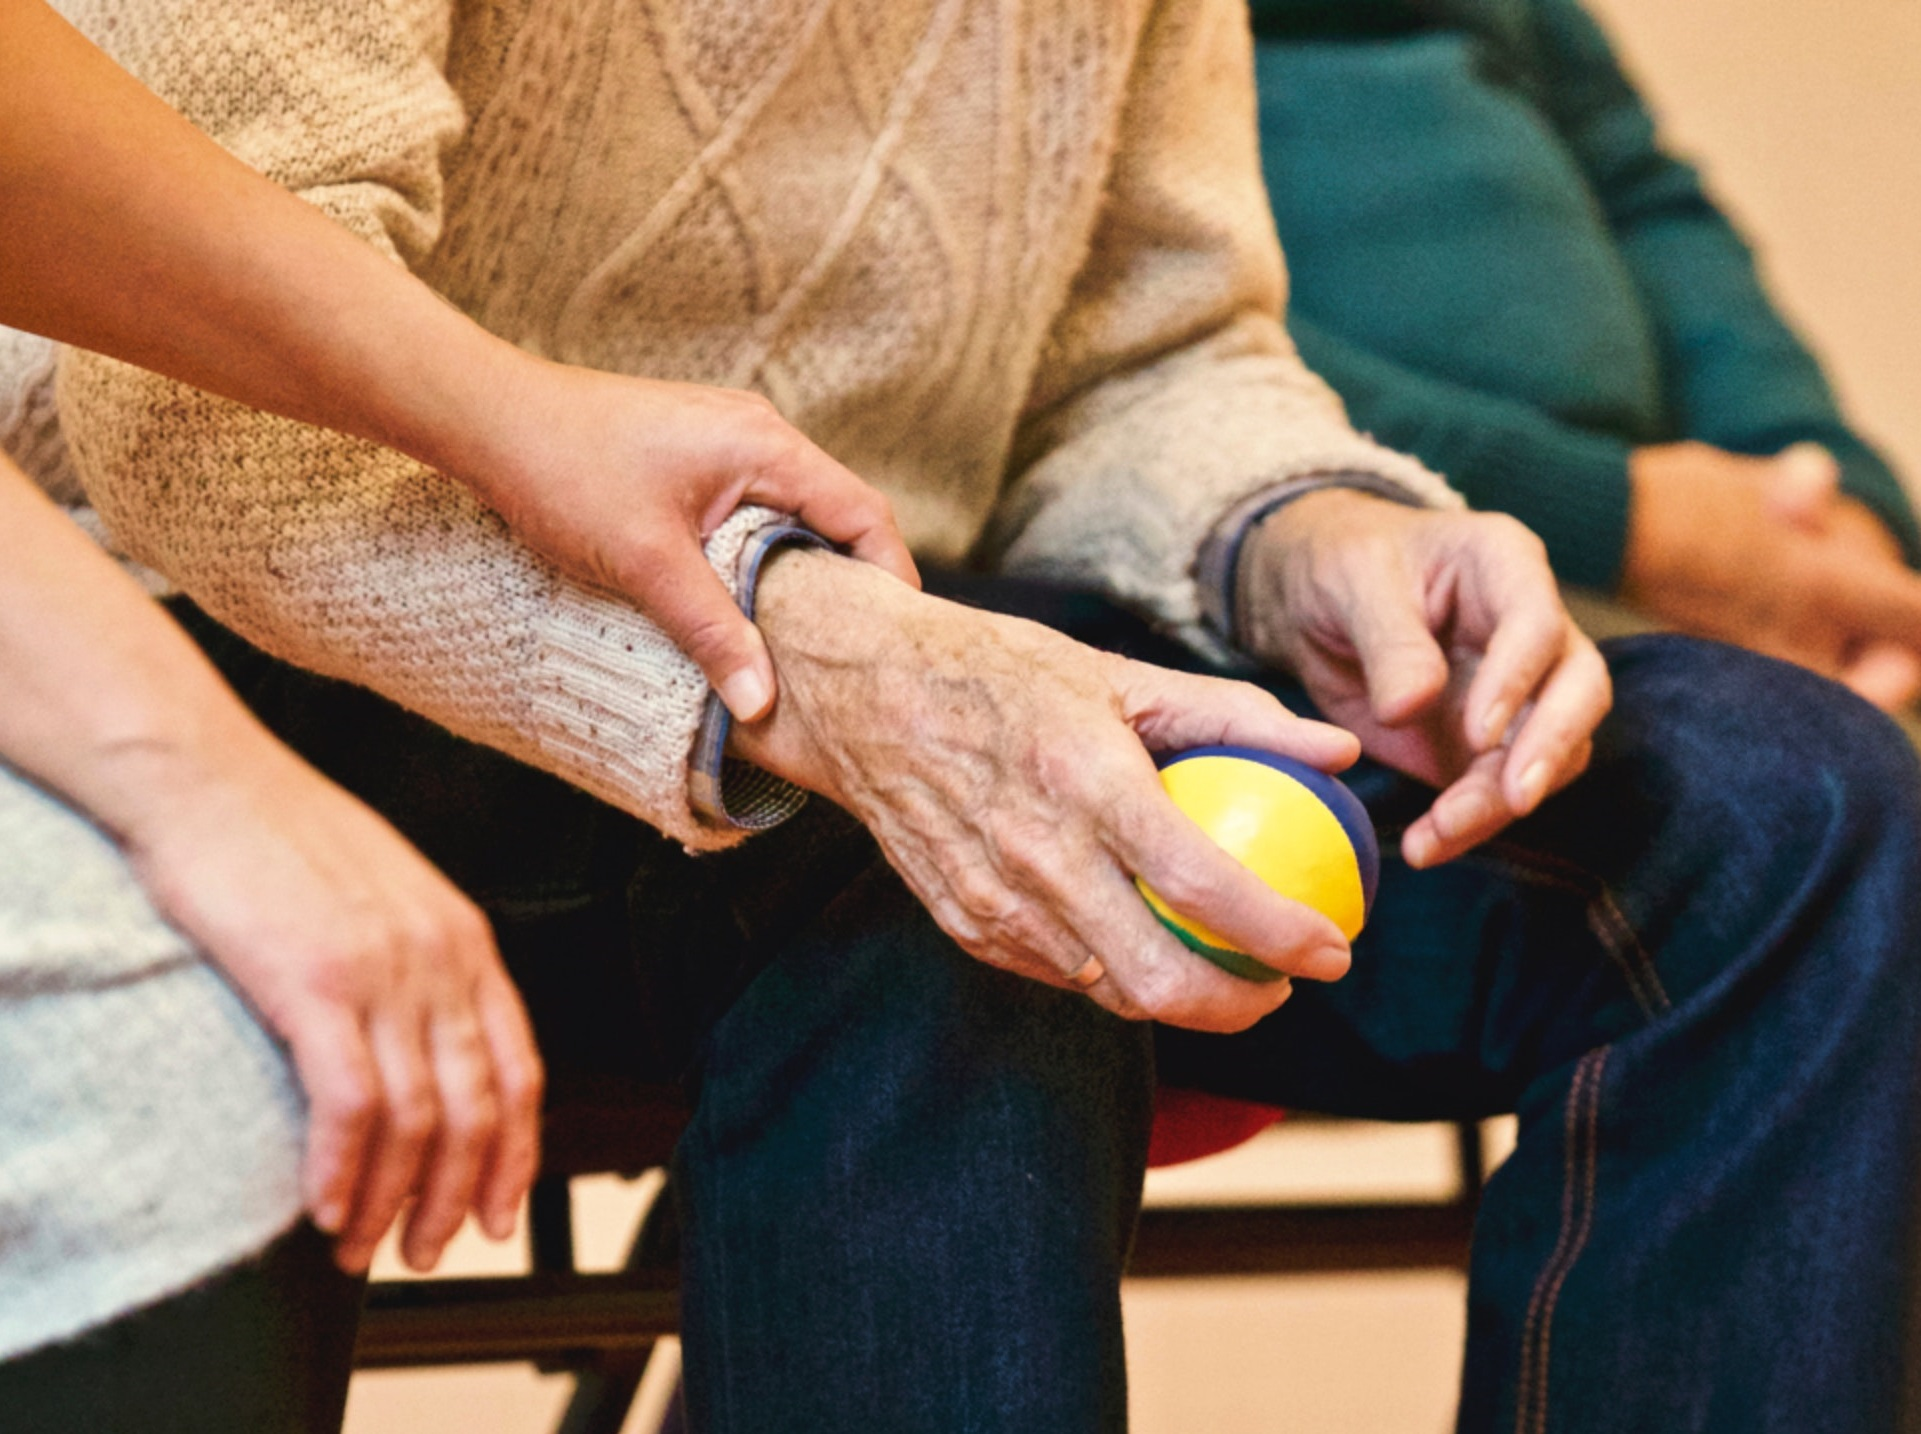 Read more about the article Where can I get trustworthy caregivers in Gurgaon?